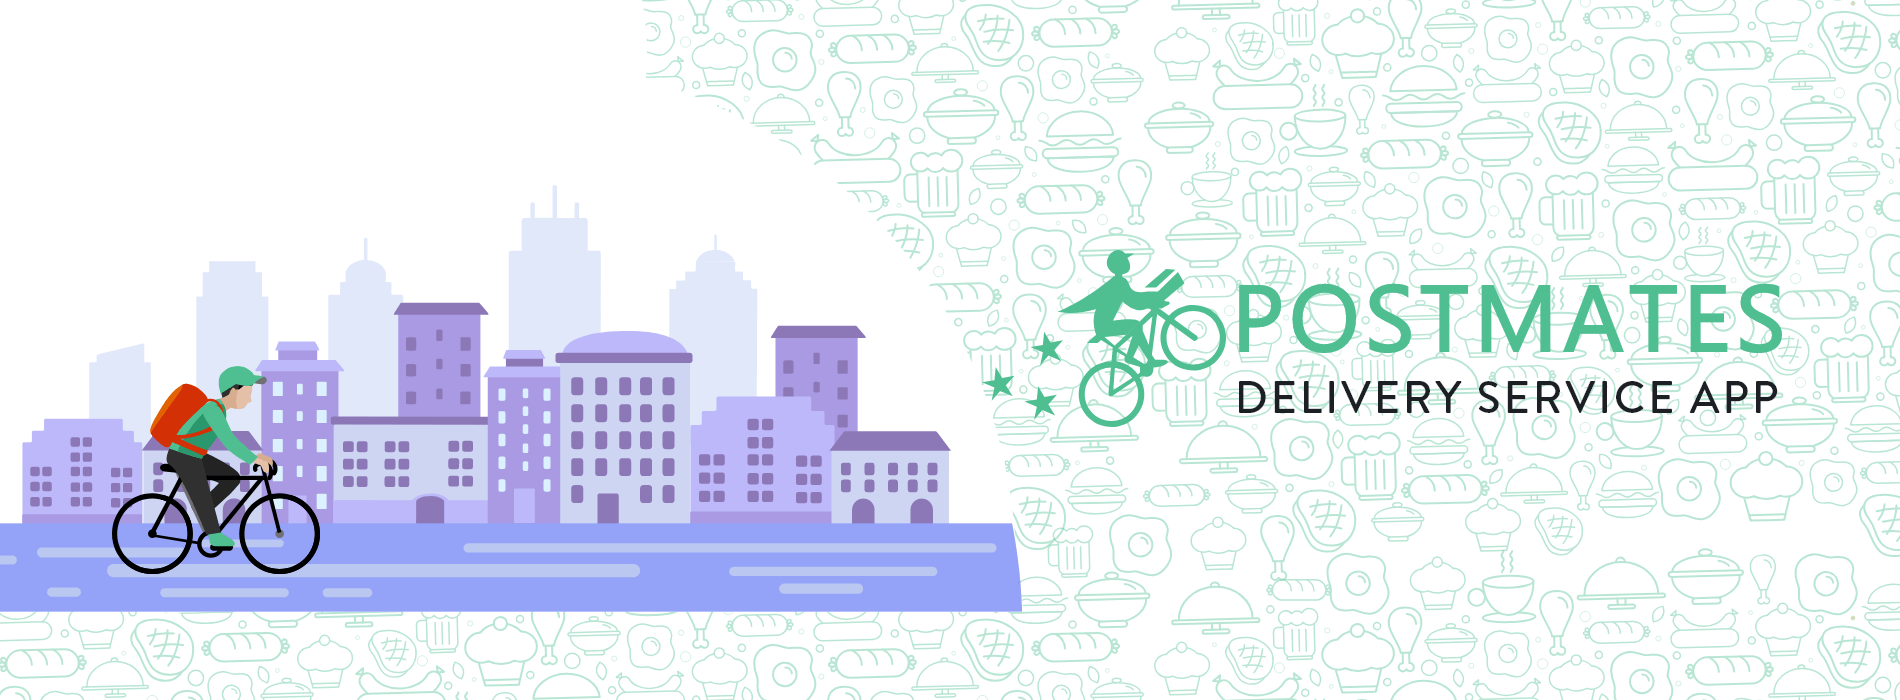 How to Make a Delivery Service App like Postmates?